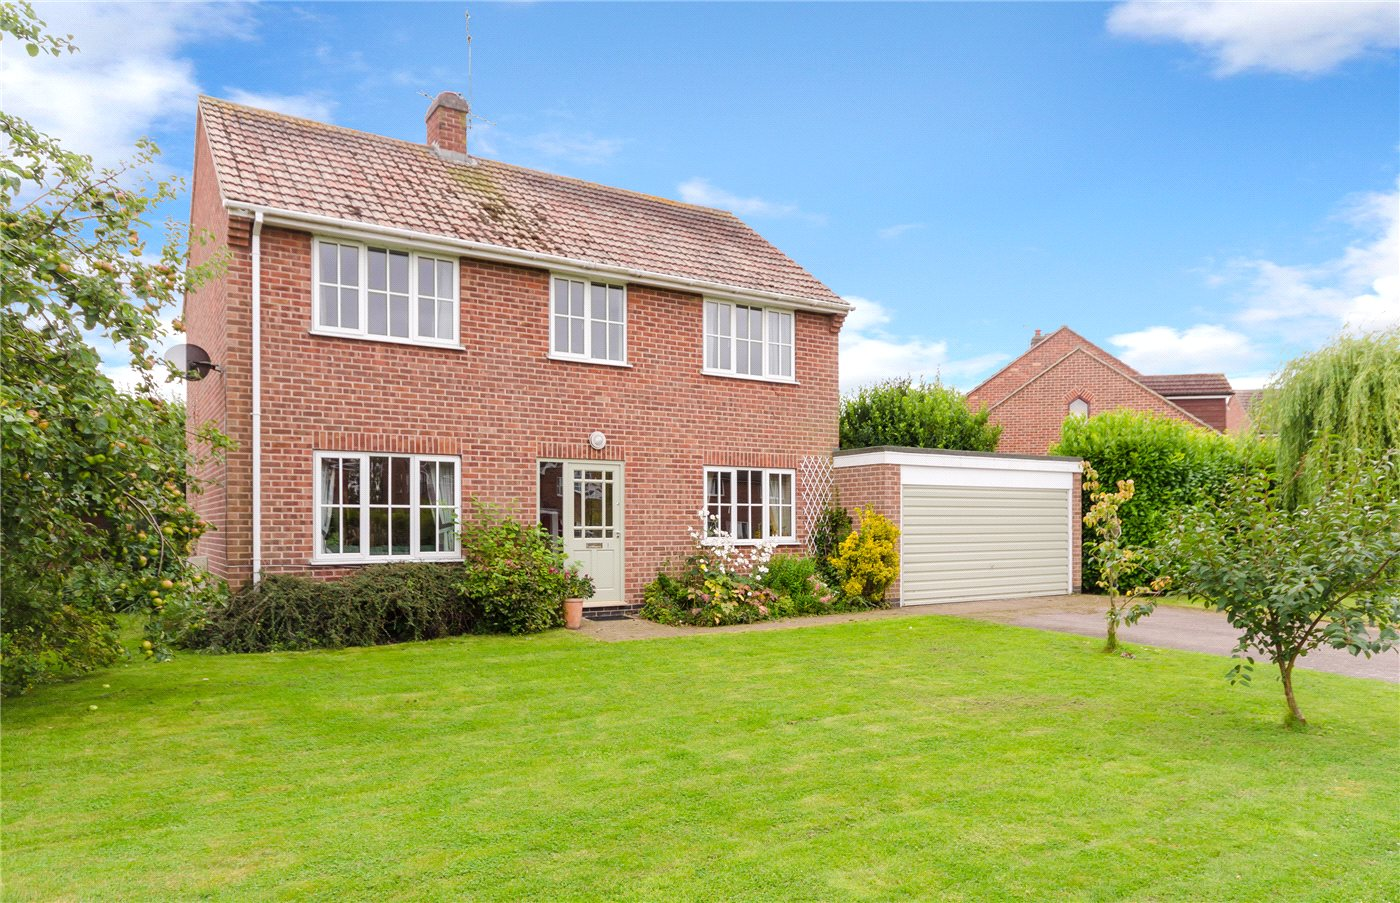 4 Bedrooms Detached House for sale in Meadows Close, Long Bennington, Newark, NG23